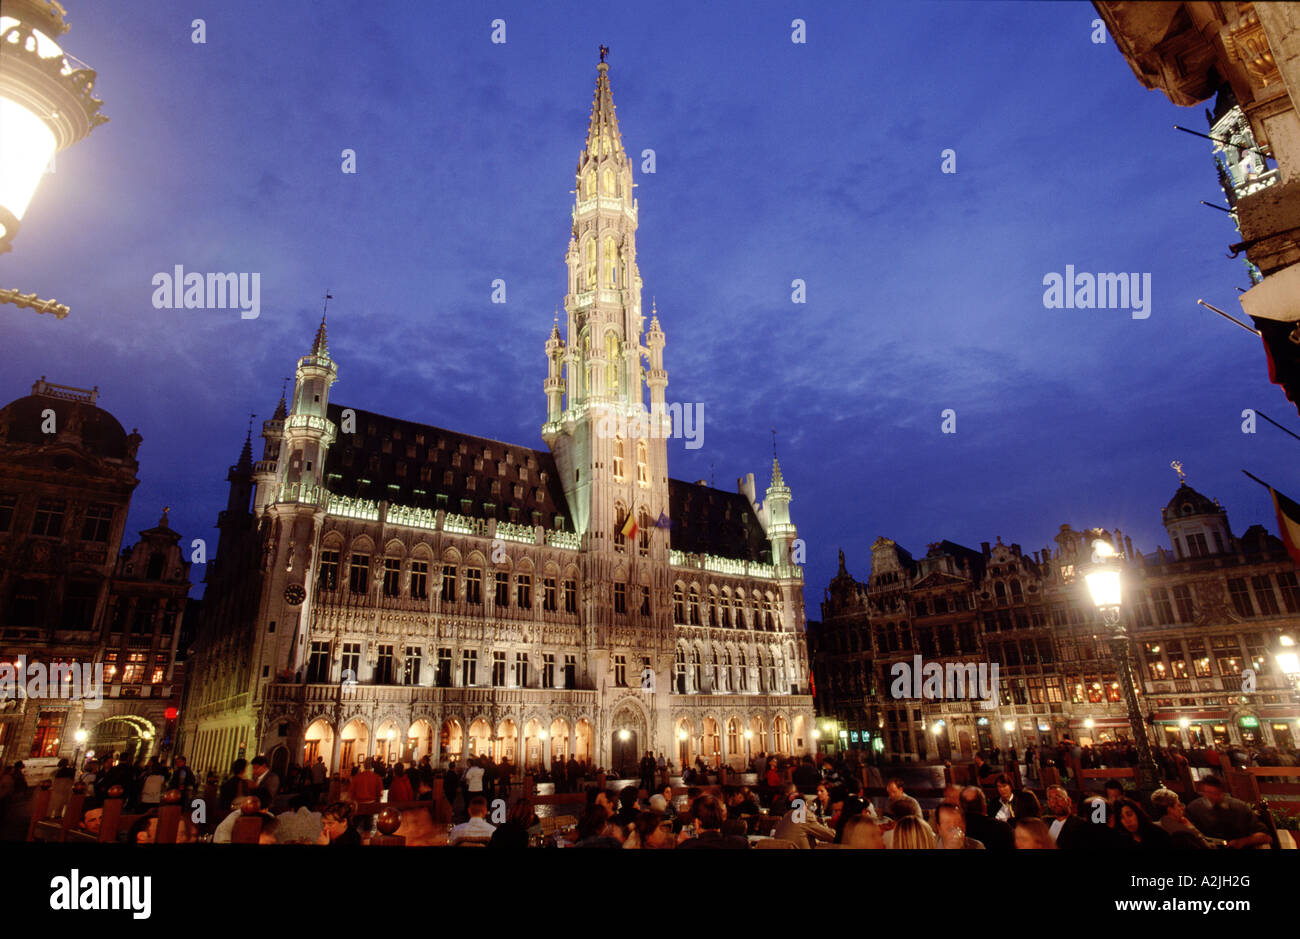 nights-falls-on-the-grand-place-in-old-b